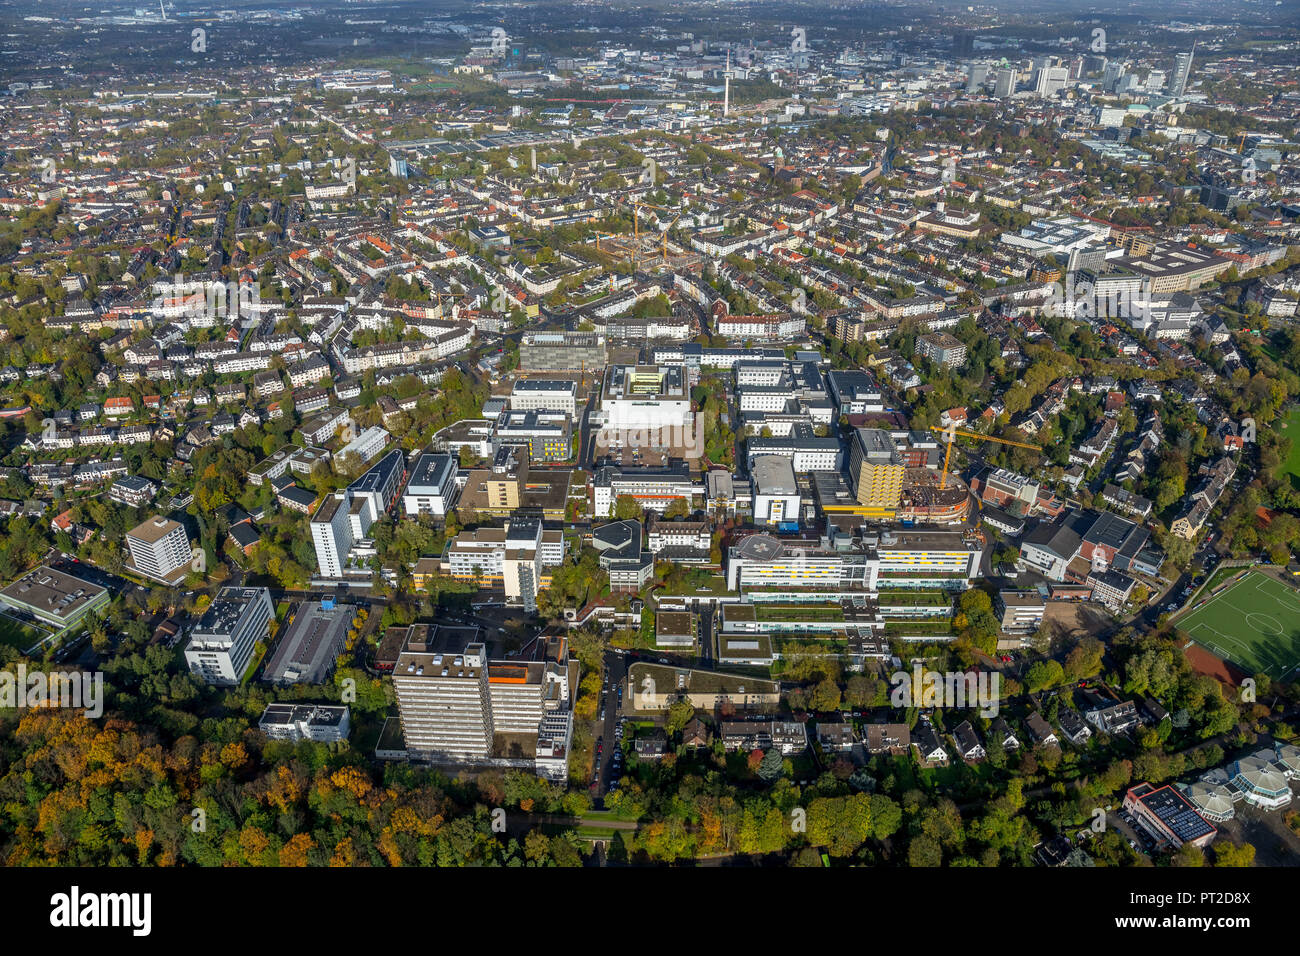 University Hospital Essen, UK Essen, University of Duisburg-Essen, Divisions Cardiovascular Diseases, Transplantation Medicine and Oncology as well as Genetic Medicine, Immunology and Infectiology, Oncological Top Center, Essen, Ruhr Area, North Rhine-Westphalia, Germany - Stock Image